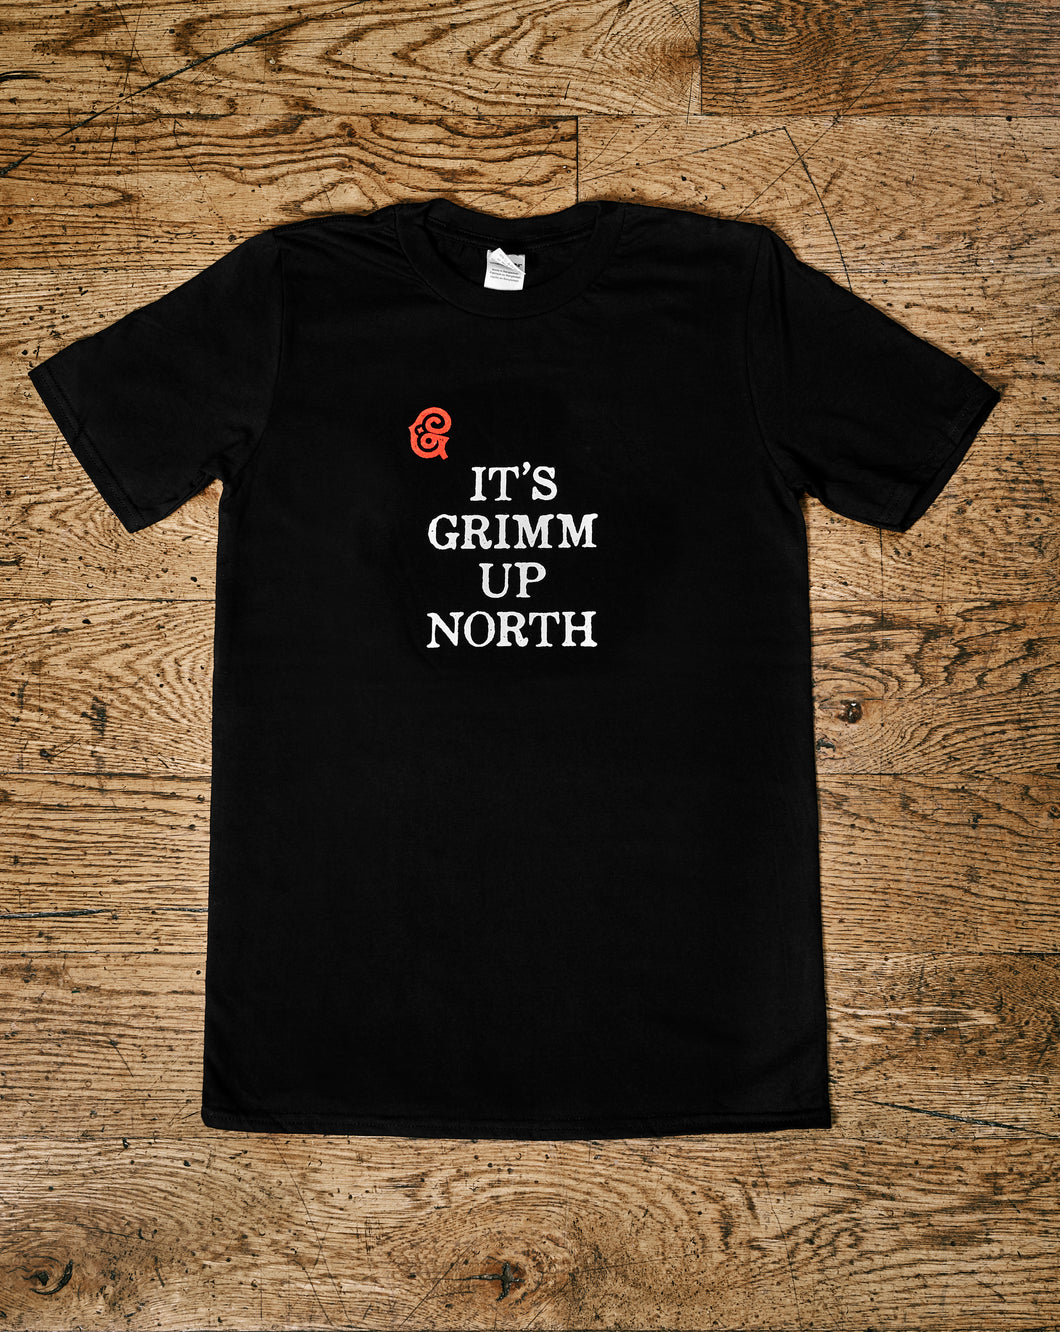 Image shows the Human Disguise t-shirt made from black cotton and printed with the slogan 'IT'S GRIMM UP NORTH' in white ink and the Grimm & Co red 'G' monogram at the top left of the slogan.